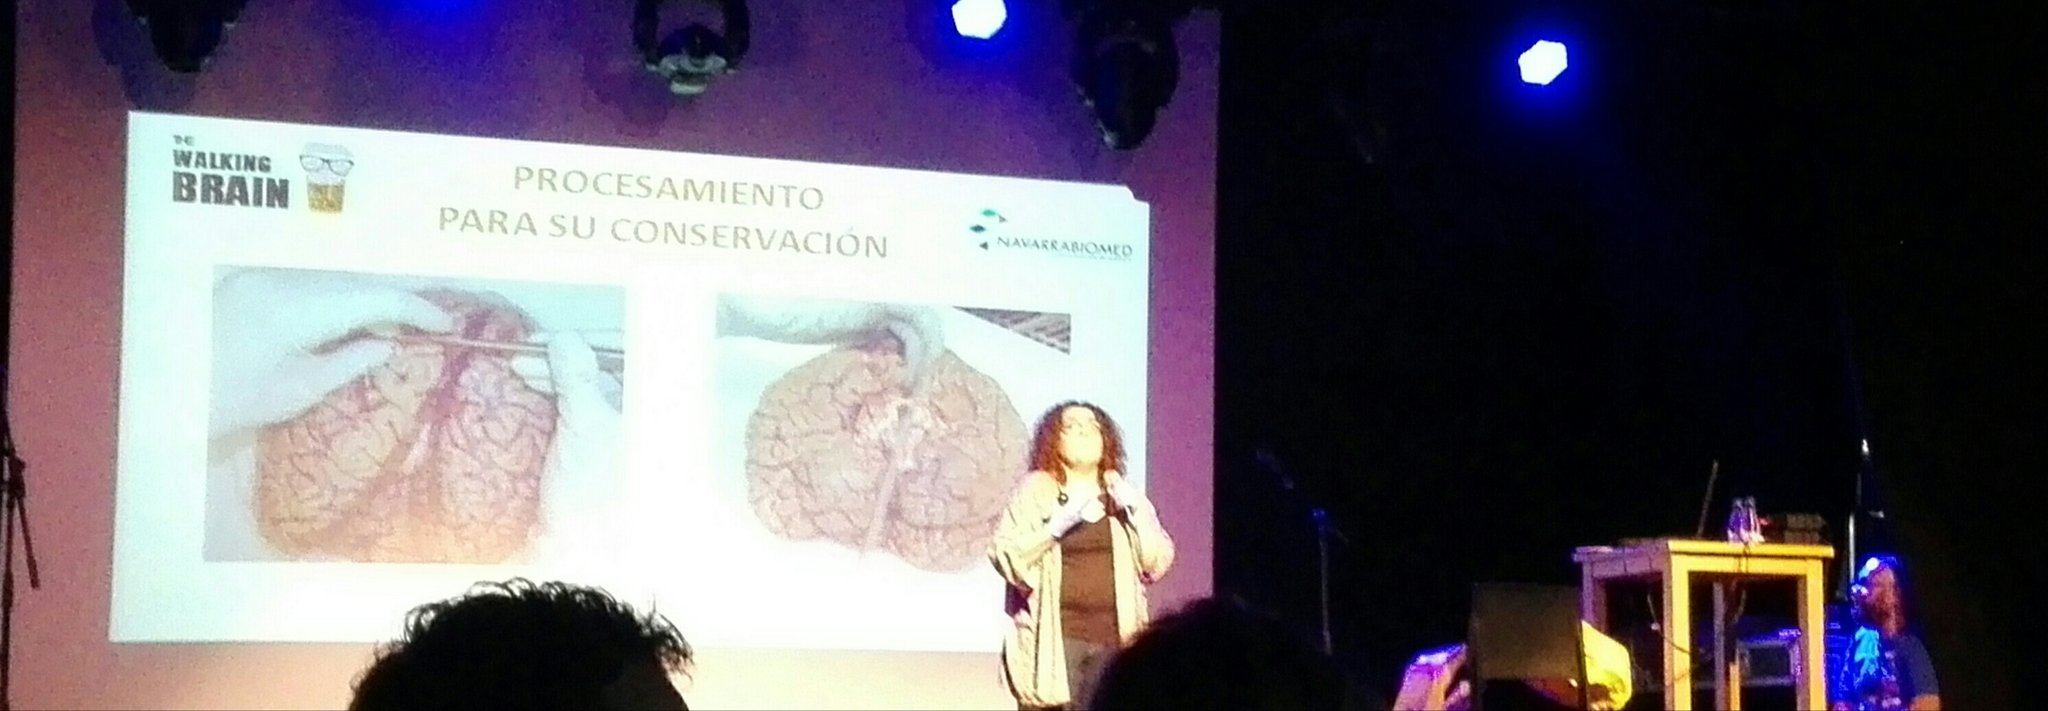 ¿Cuánto pesa un cerebro? #Pint17PNA @pintofscienceES @navarrabiomed https://t.co/N9HGXFvI3u